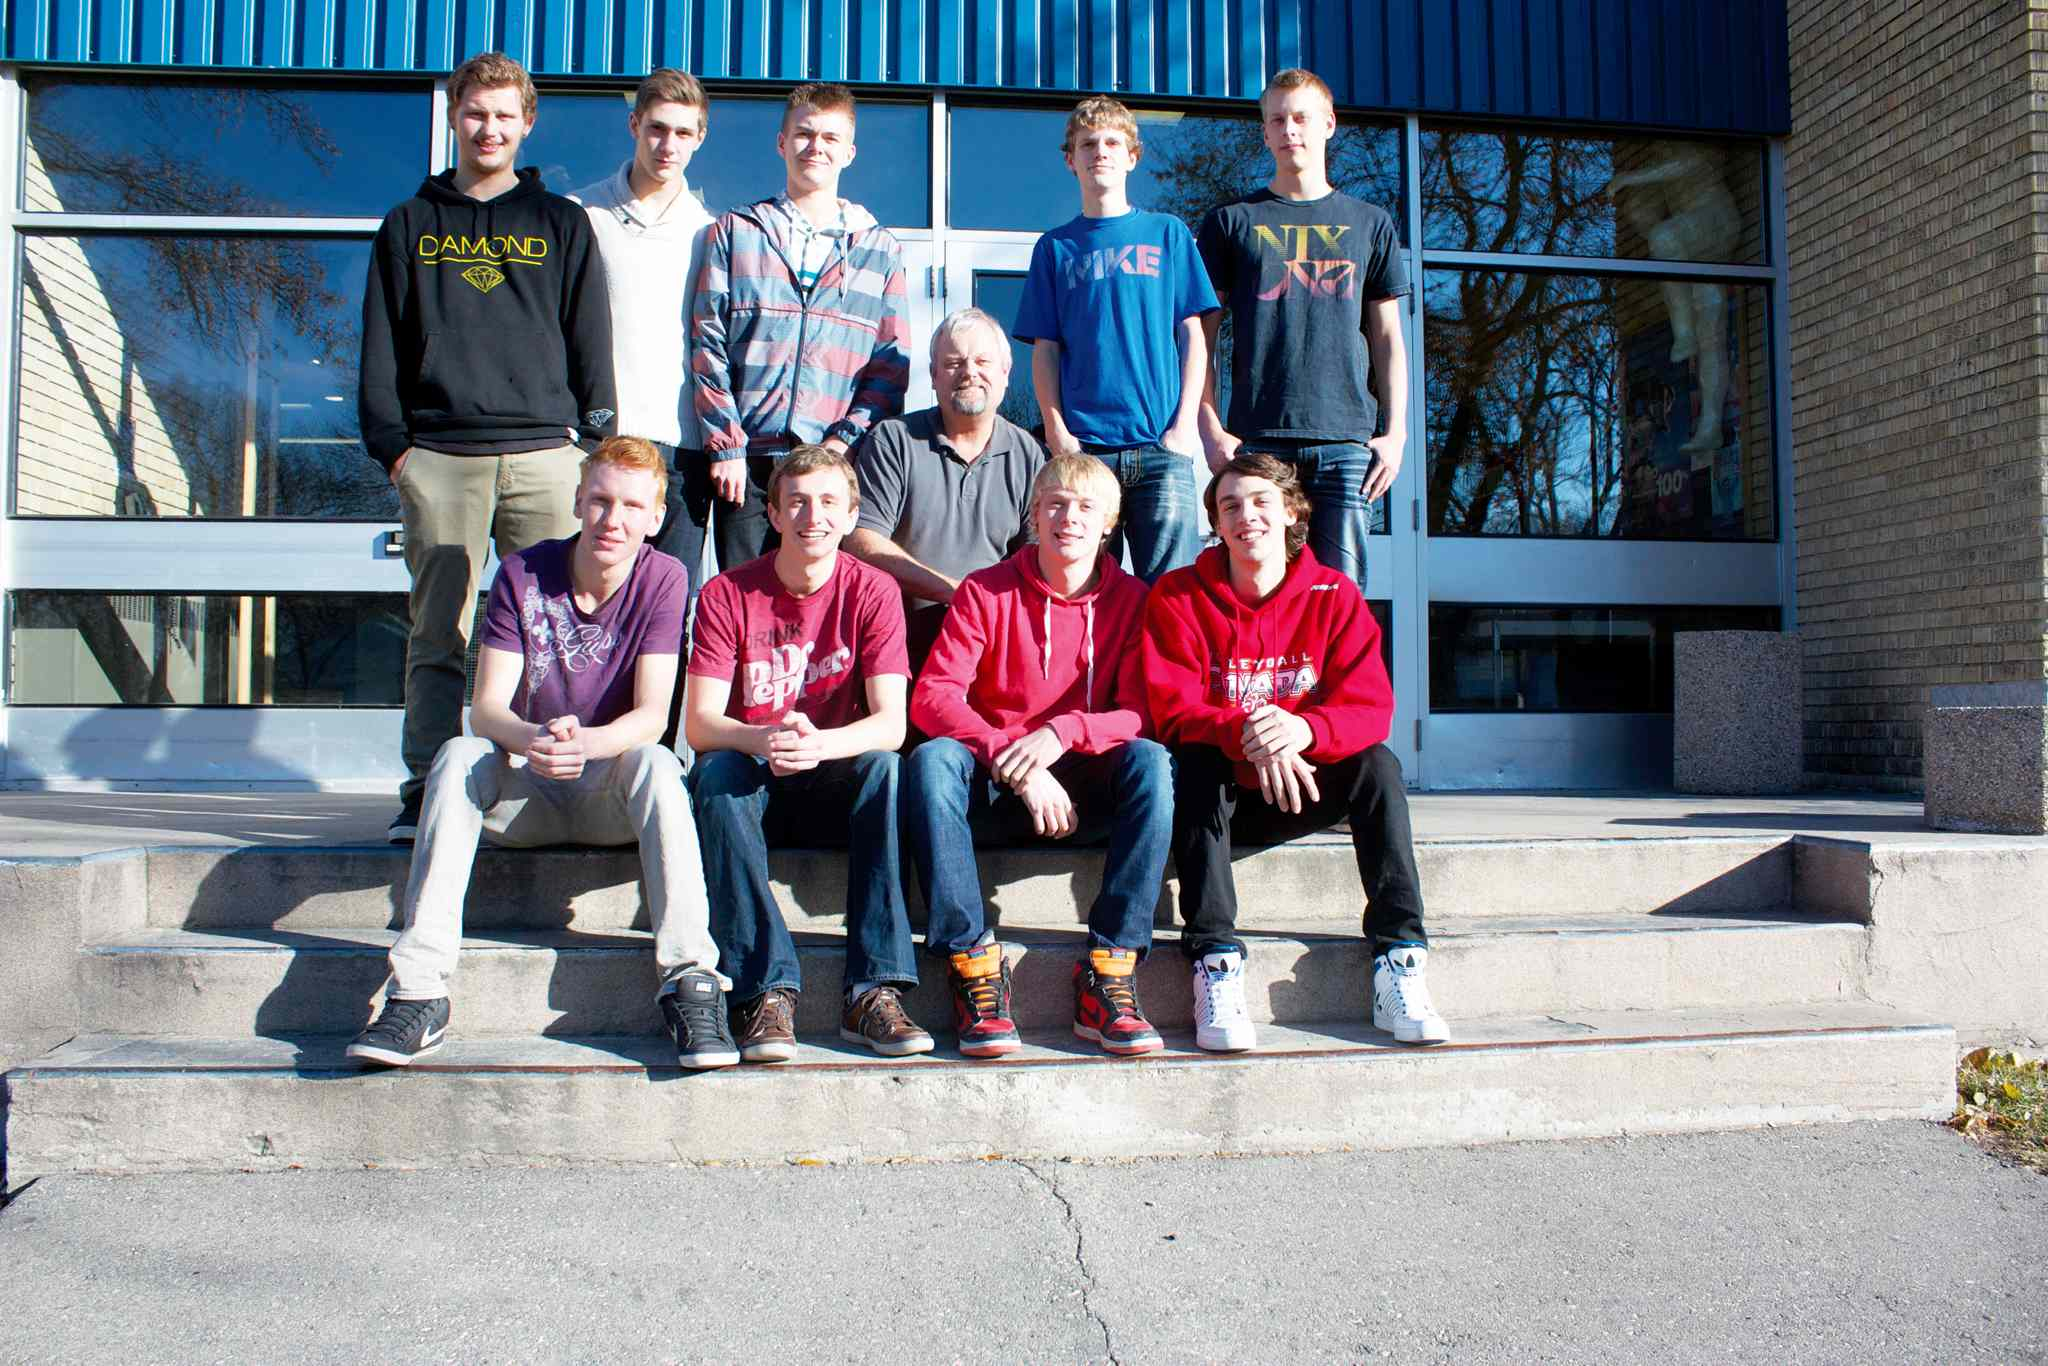 The Calvin Christian Eagles boys' volleyball team is shown.  Front row: Spencer Janzen, Colin Kamerman, Lyle Koop, and Dalon Hordyk.  Back row: Trevor Dalmaijer, Matthew Ginter, Ted Jeninga (head coach), Riley Bouwman, Kyle Reenders, and Jordan Davis.